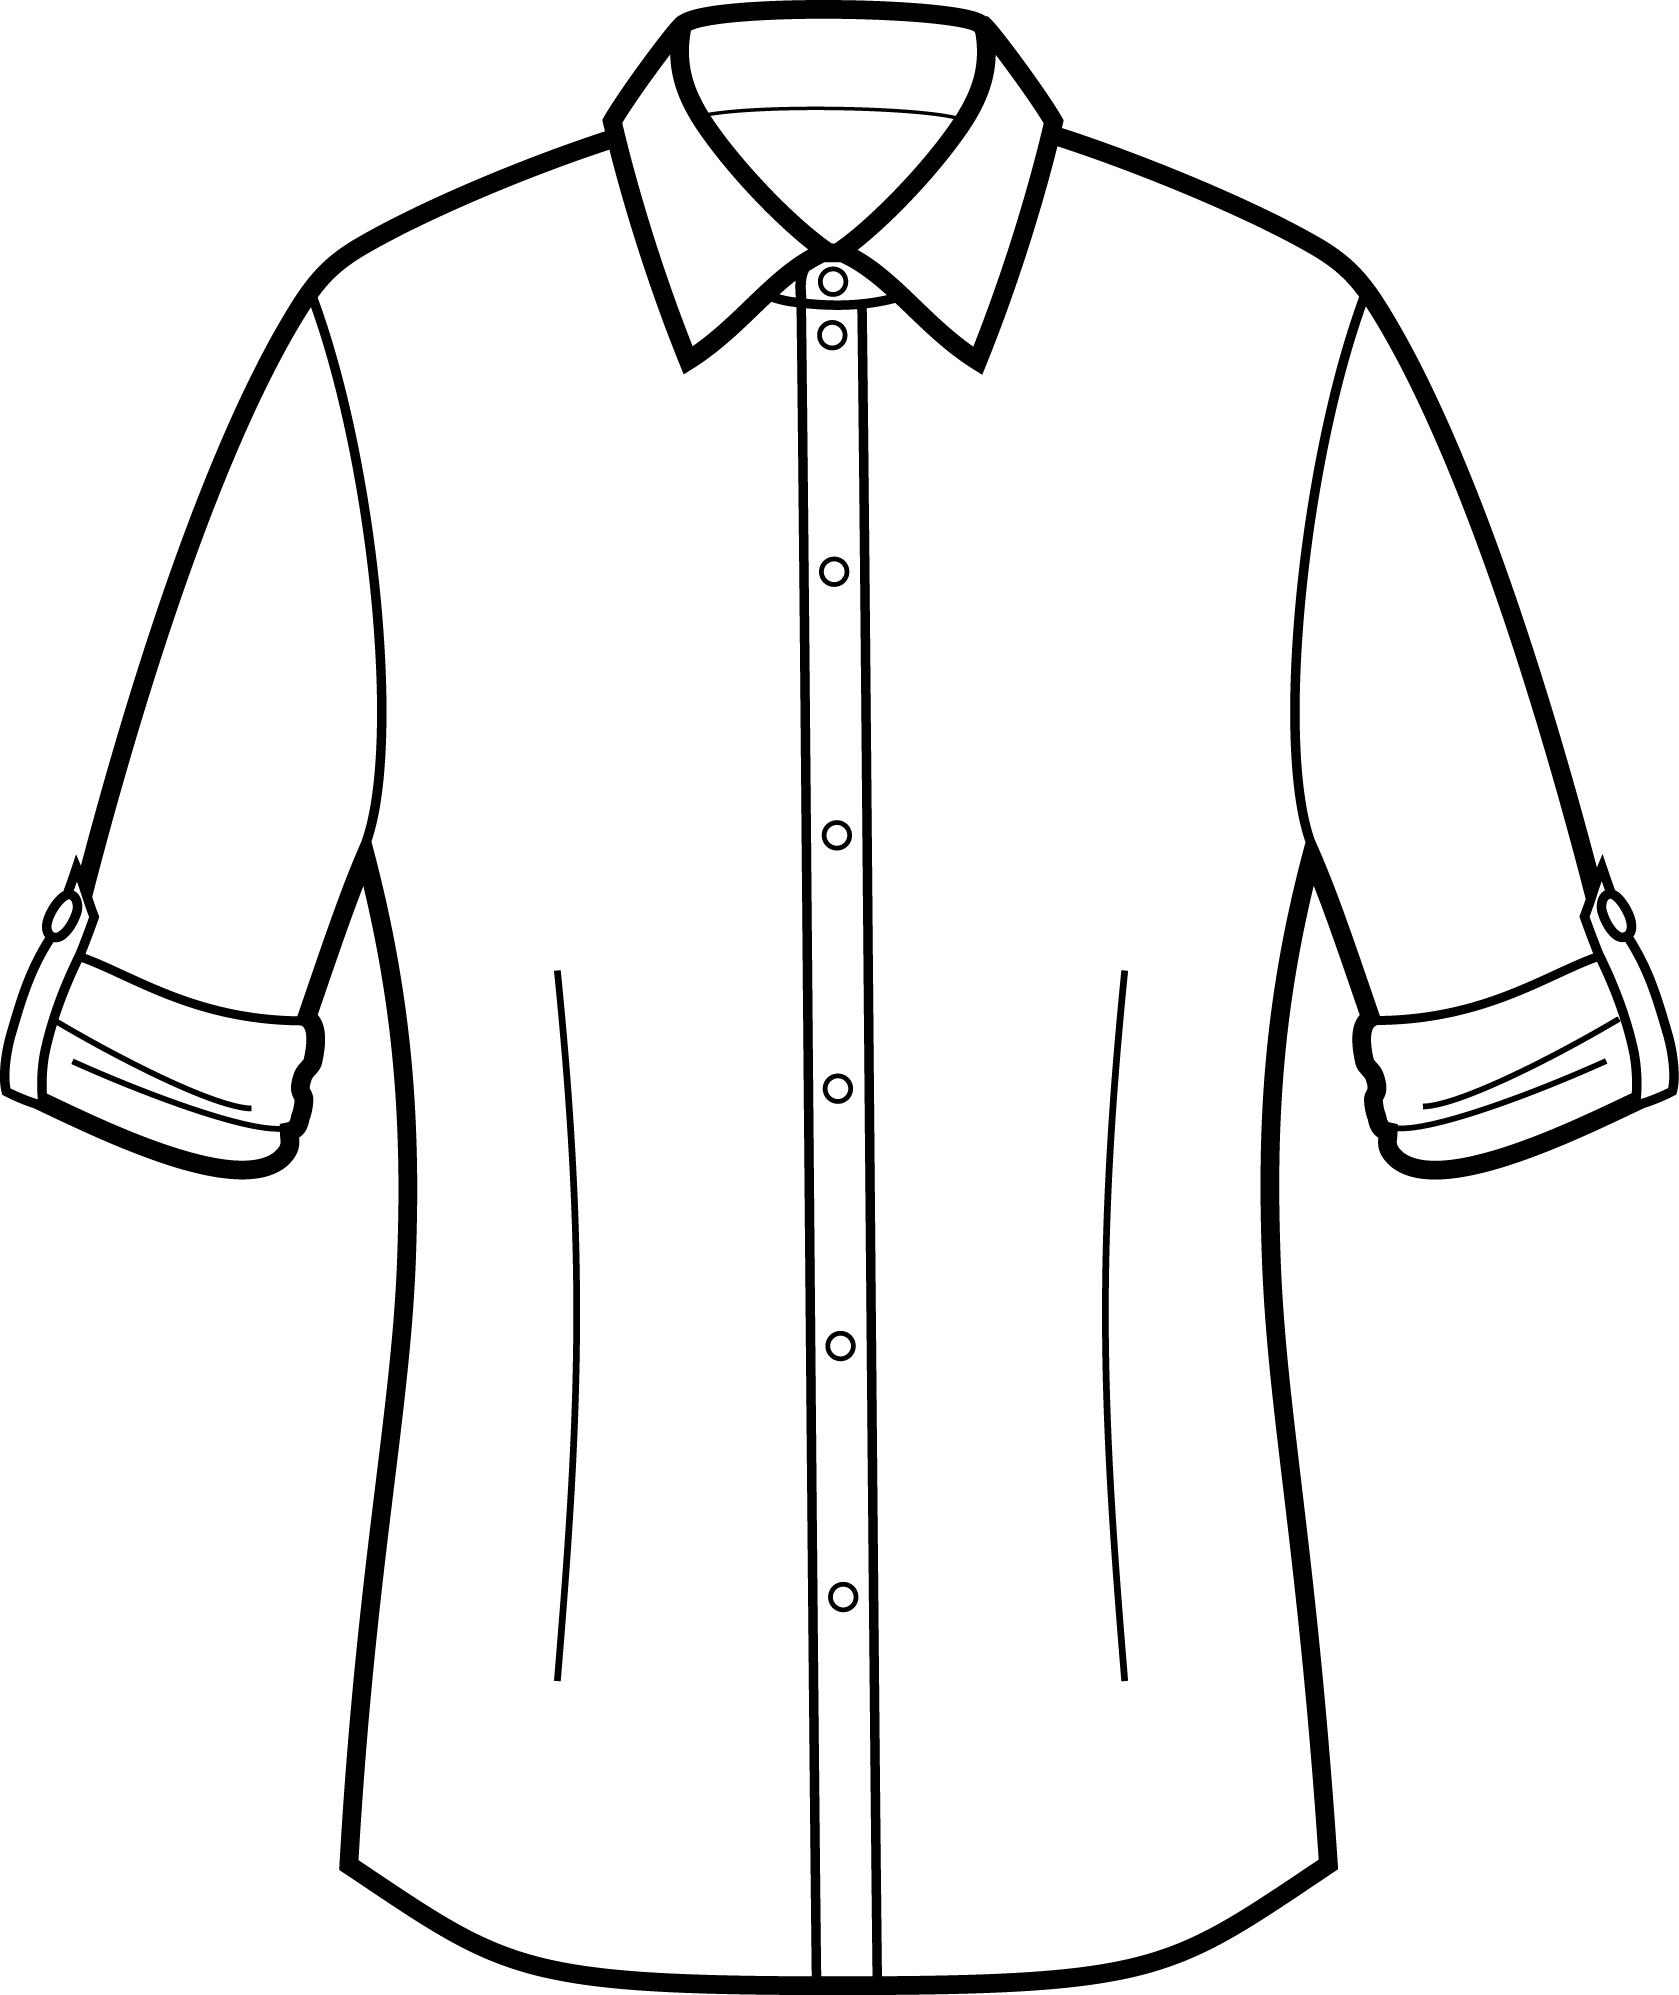 Rolled Sleeve Shirts